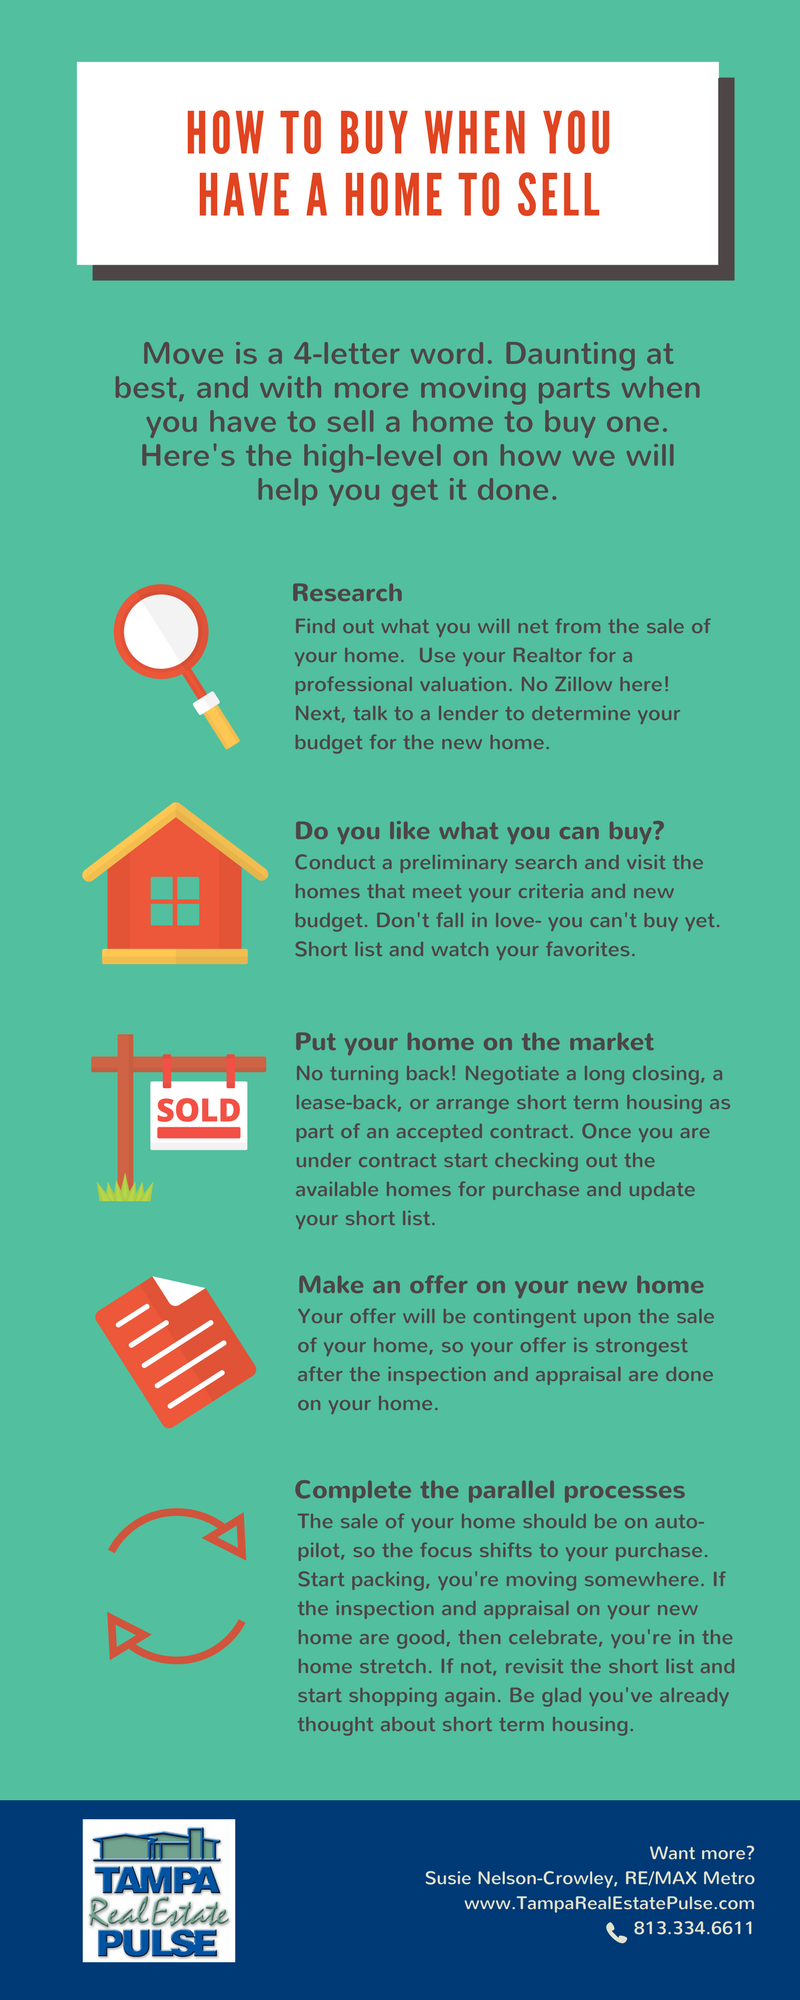 How to Buy When You Have a Home to Sell